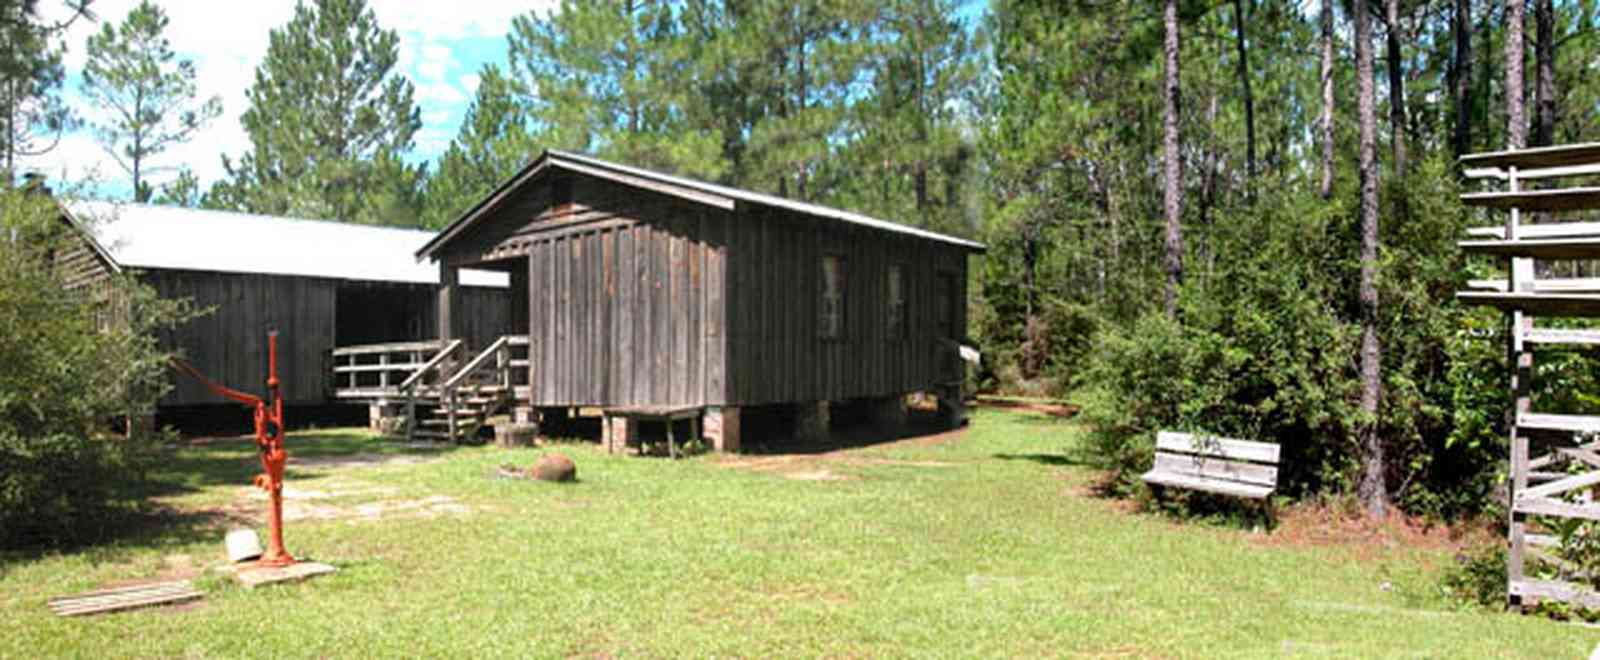 Cantonment:-Roy-Hyatt-Environmental-Center-Dog-Trot-House_02.jpg:  dog trot house, wisteria vine, porch, pine tree, board and batten, pump, brick piers